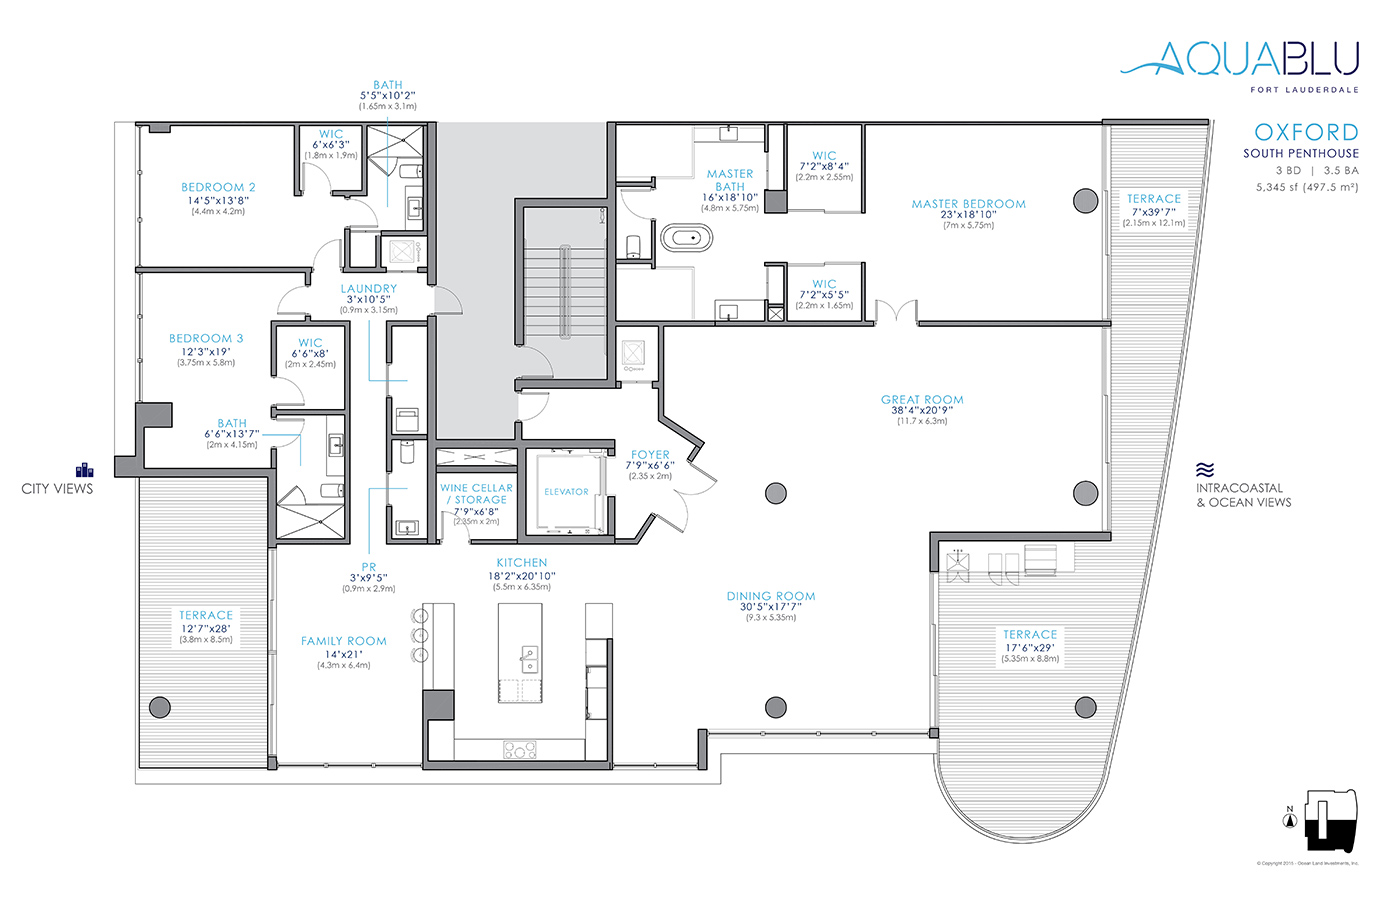 AquaBlu - Floorplan 5